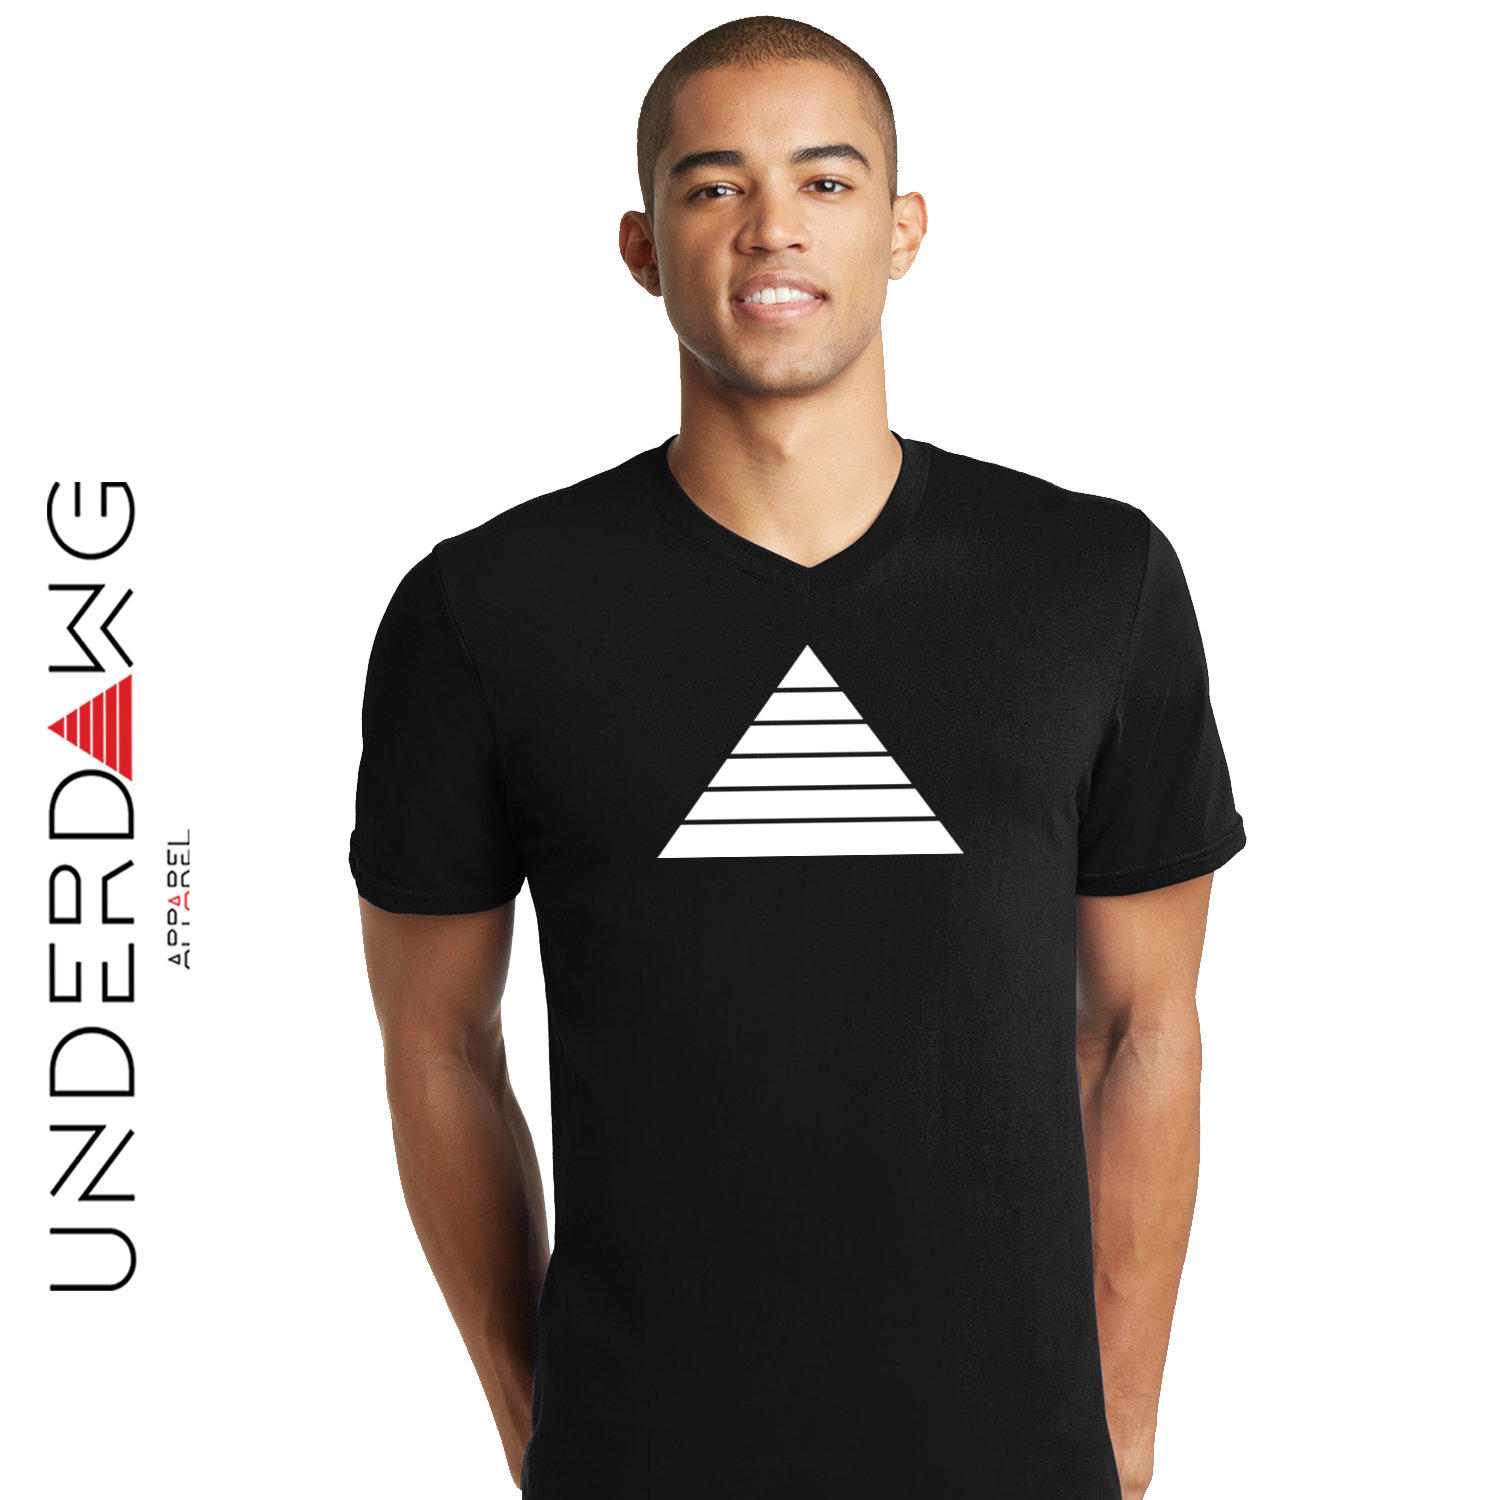 UnderDawg Pyramid Short-Sleeve T-Shirt 00030